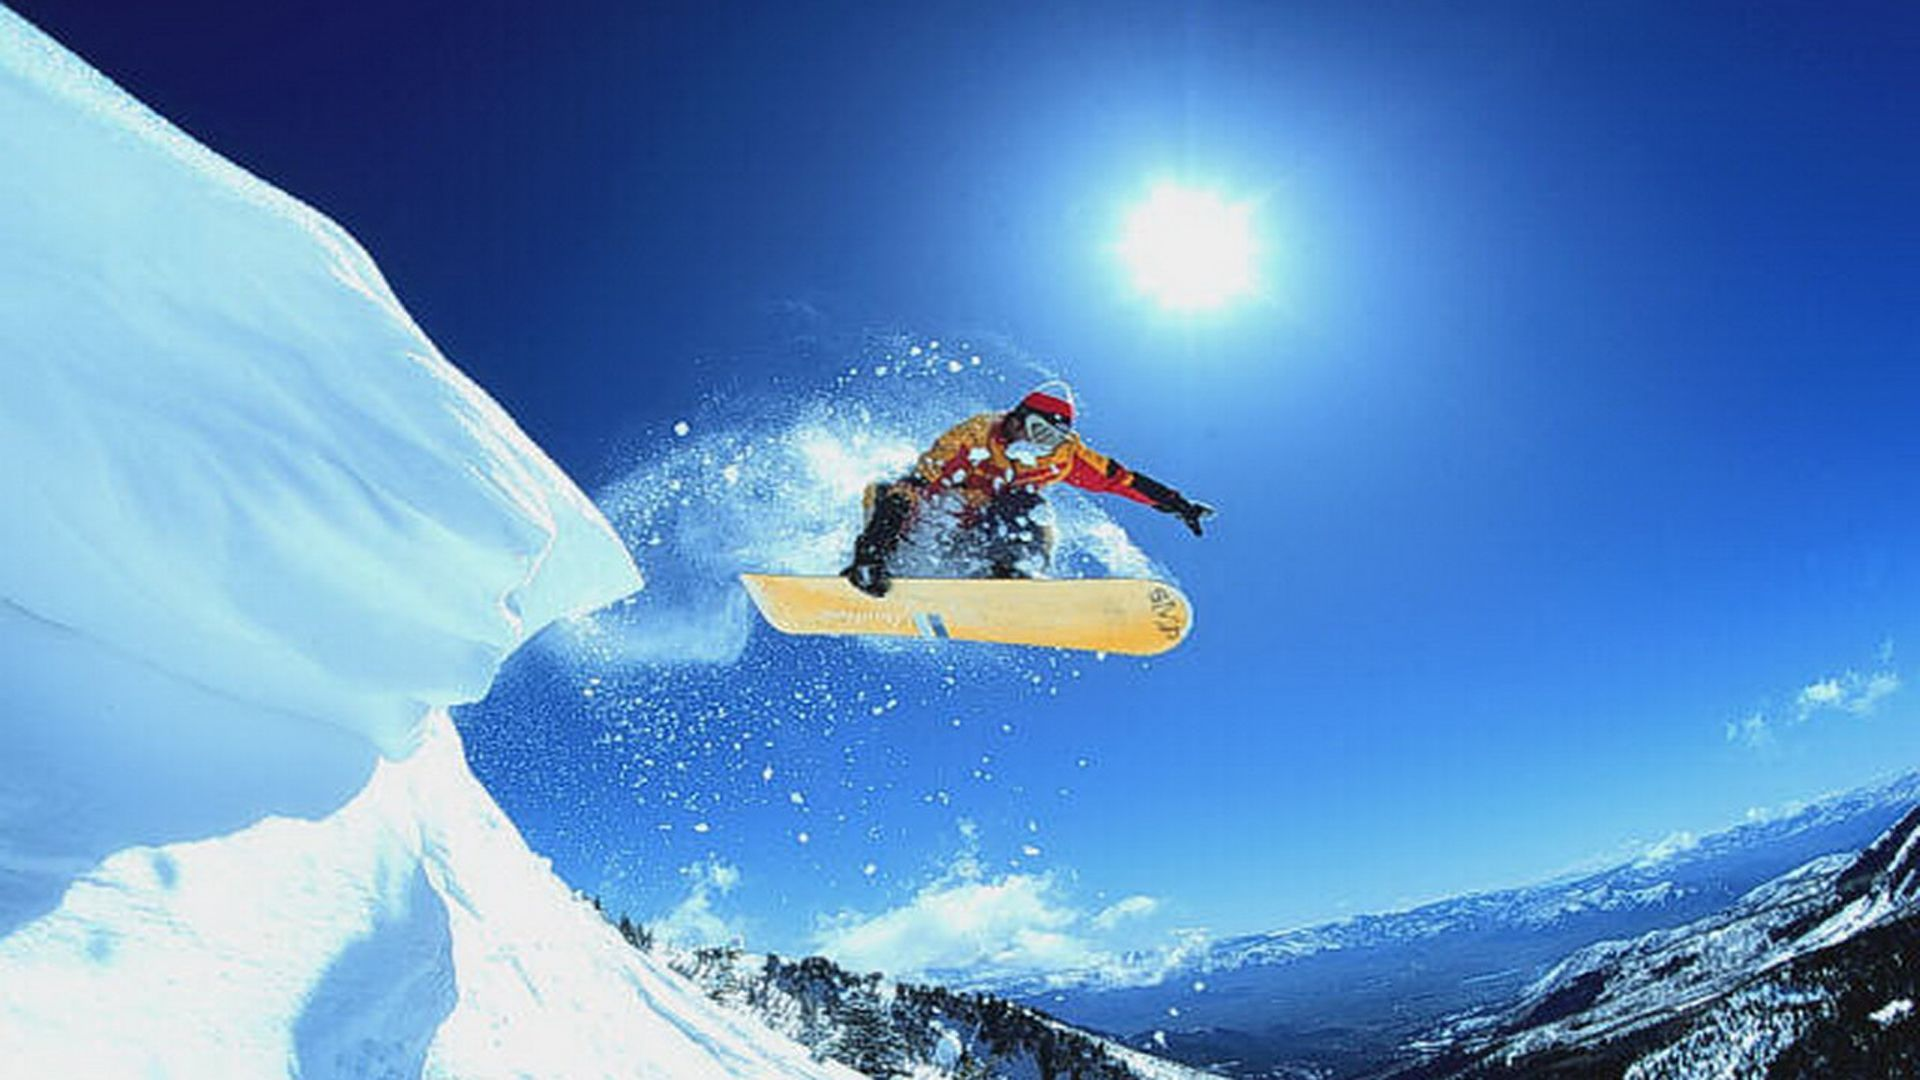 1920x1080 hd snowboarding wallpapers - Google Search | Sports | Pinterest ...